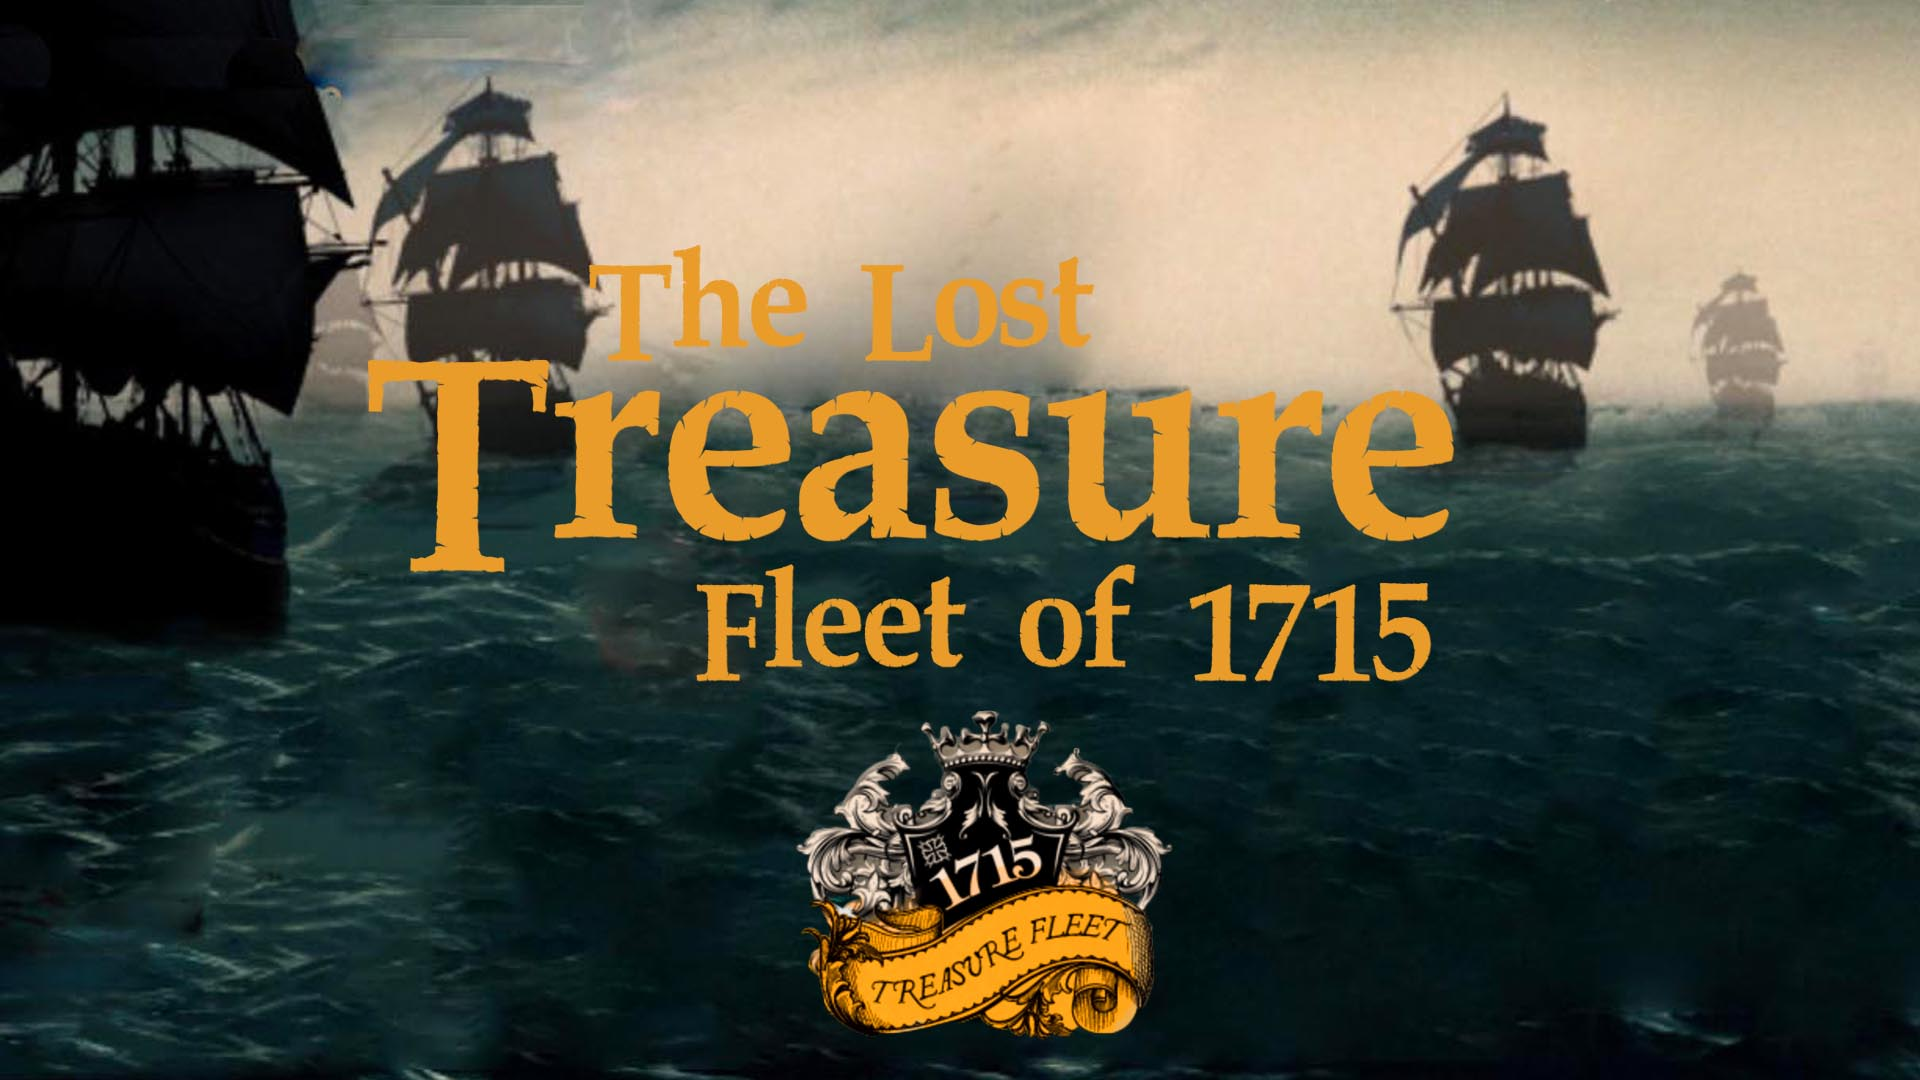 The Lost Treasure Fleet of 1715